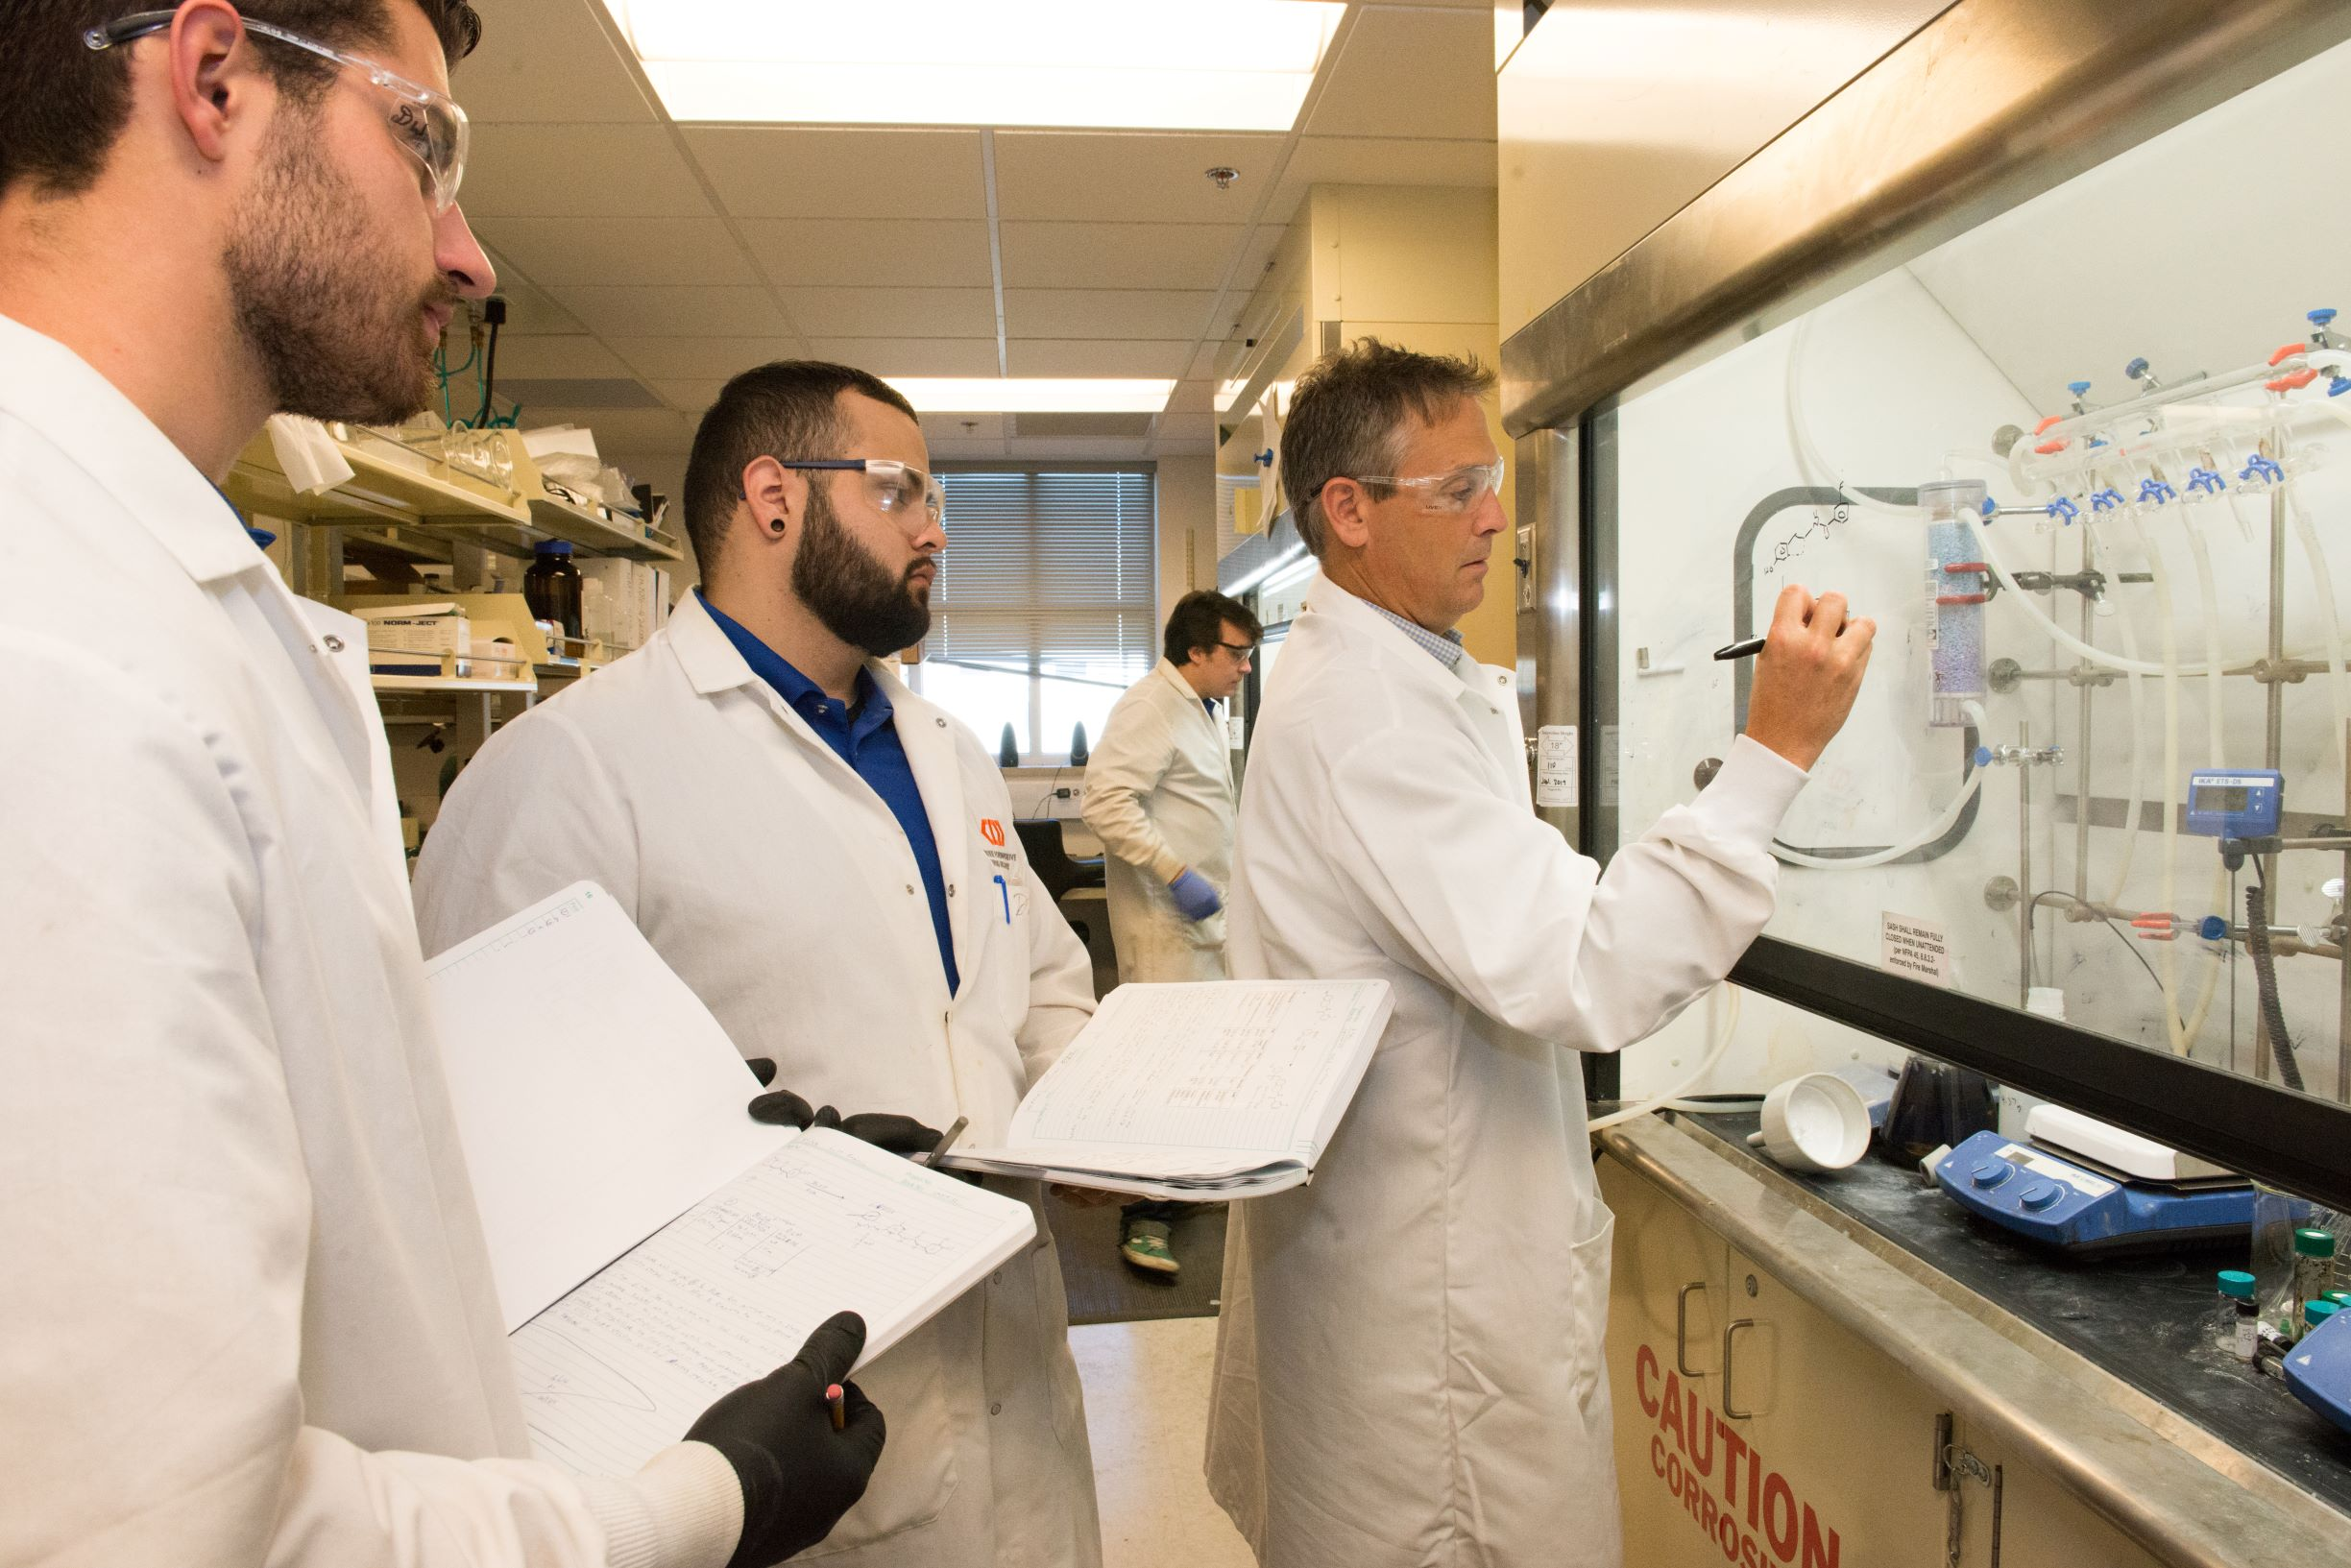 UTSA Innovation and Commercialization Help Researchers Get Ideas to Market In Challenging Times